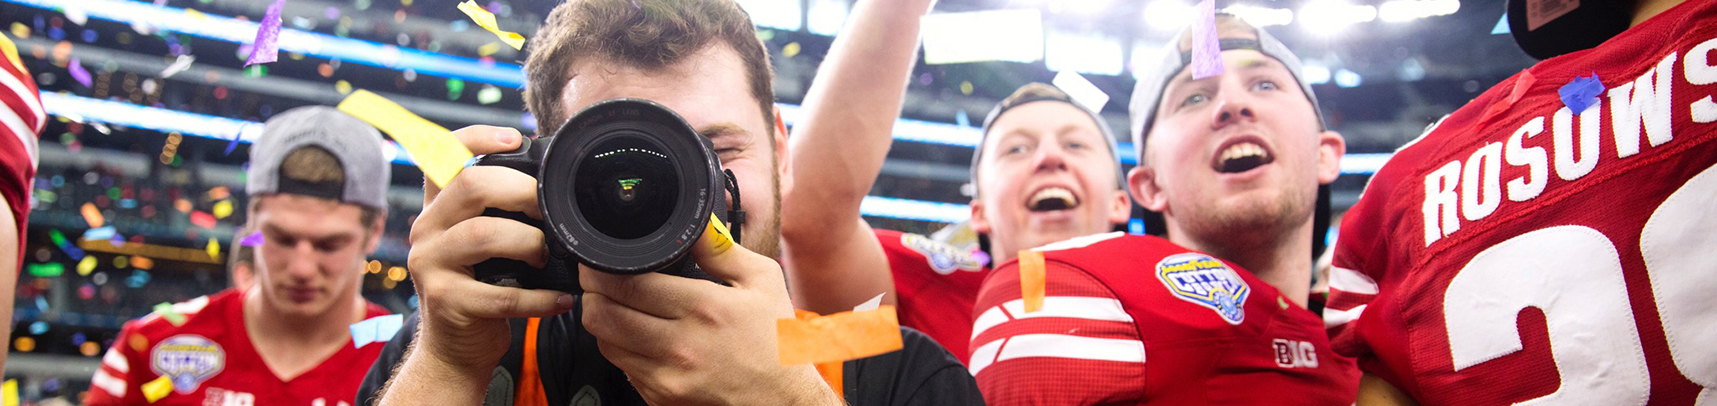 image of a camera man taking pictures at a football game